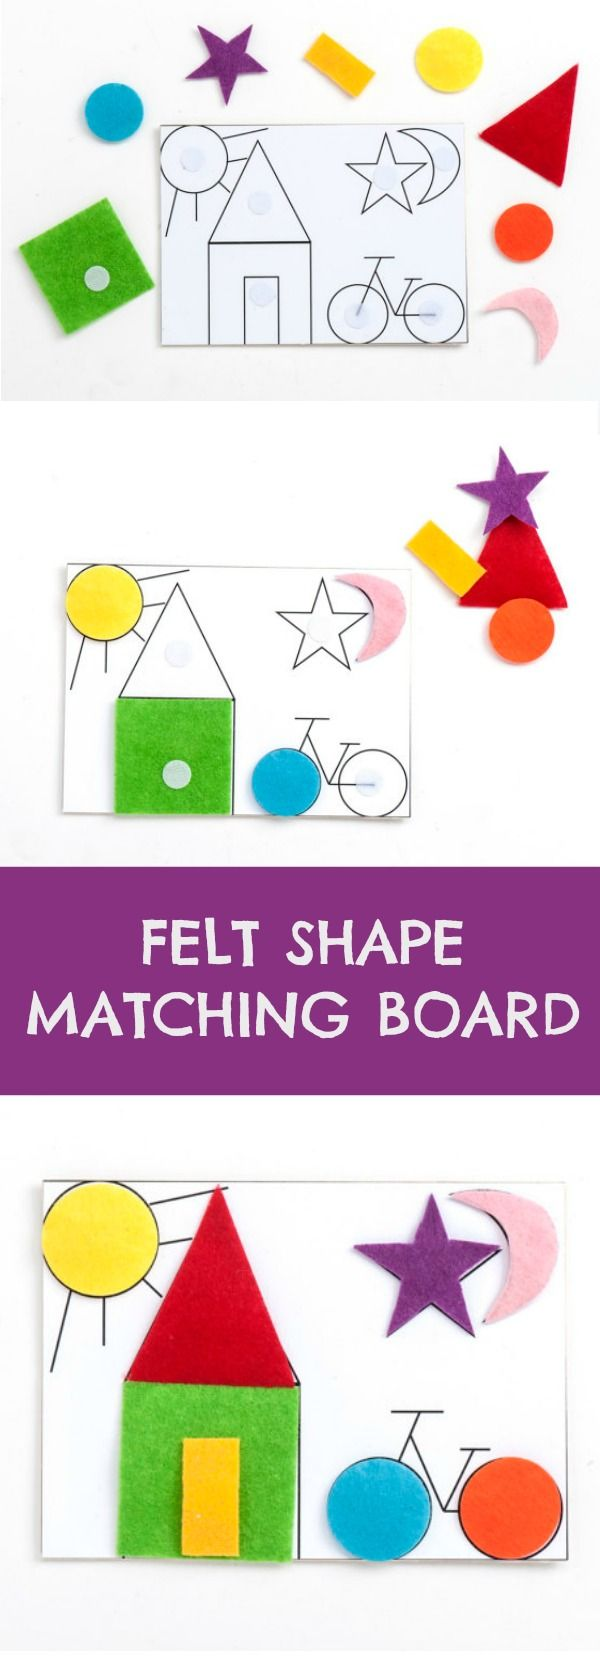 Felt Shape Matching Board #felt #shapes #montessori #toddler #preschool #preschoolers #prek #homeschool #busybags #affiliate